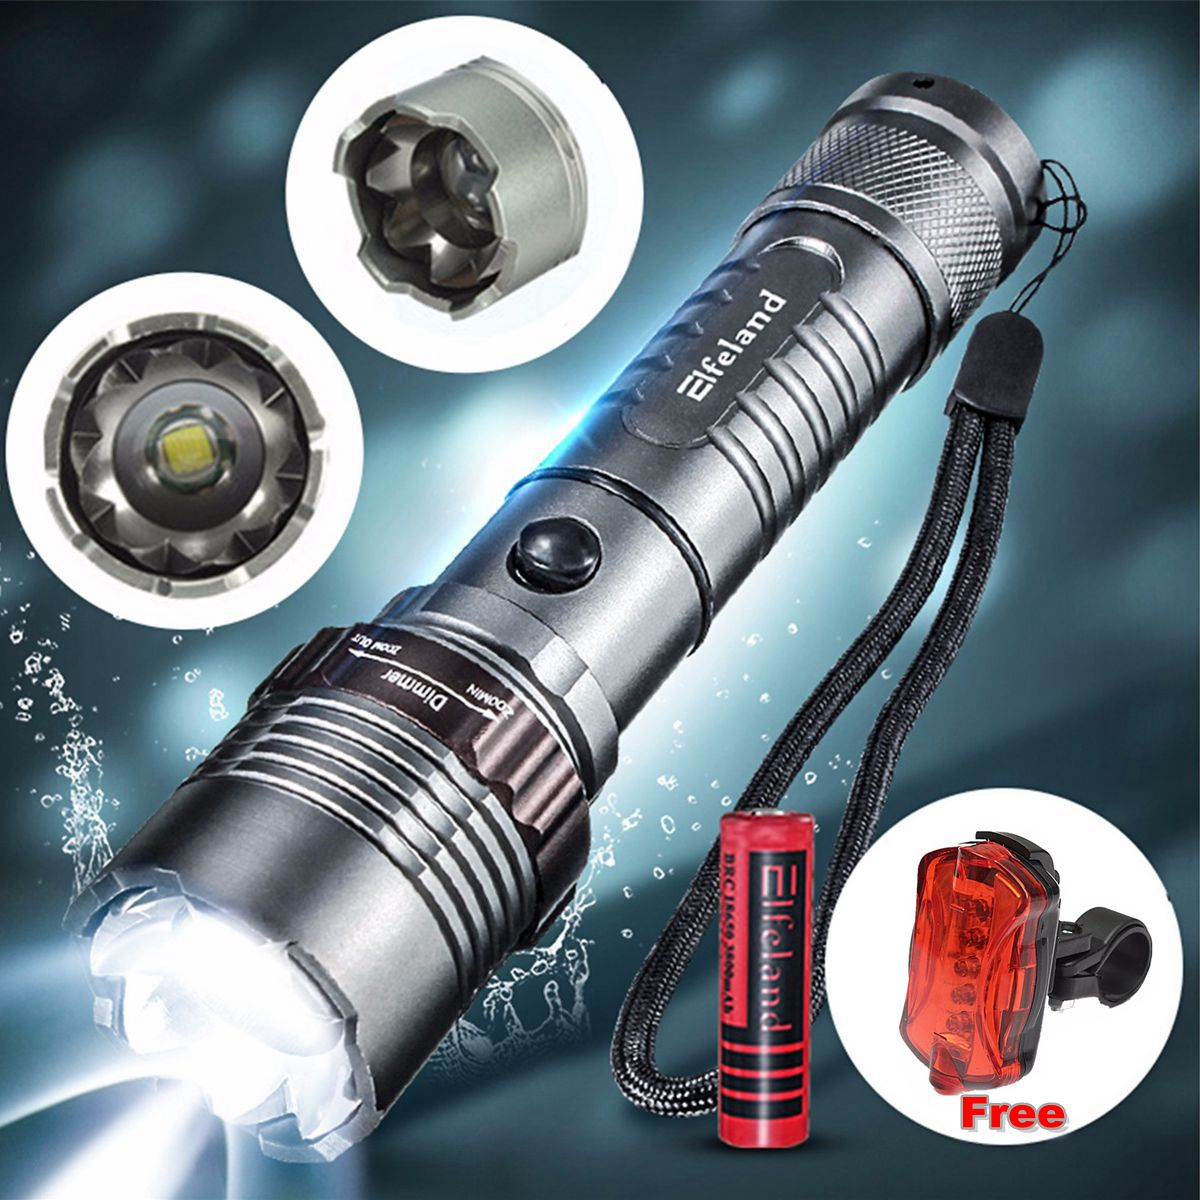 2600 Lumens T6 LED Flashlight Zoomable Focus Flashlight Torch Lamp Super Bright + 18650 Rechargeable Battery + Bike Rear Light for Camping Hiking Cycling